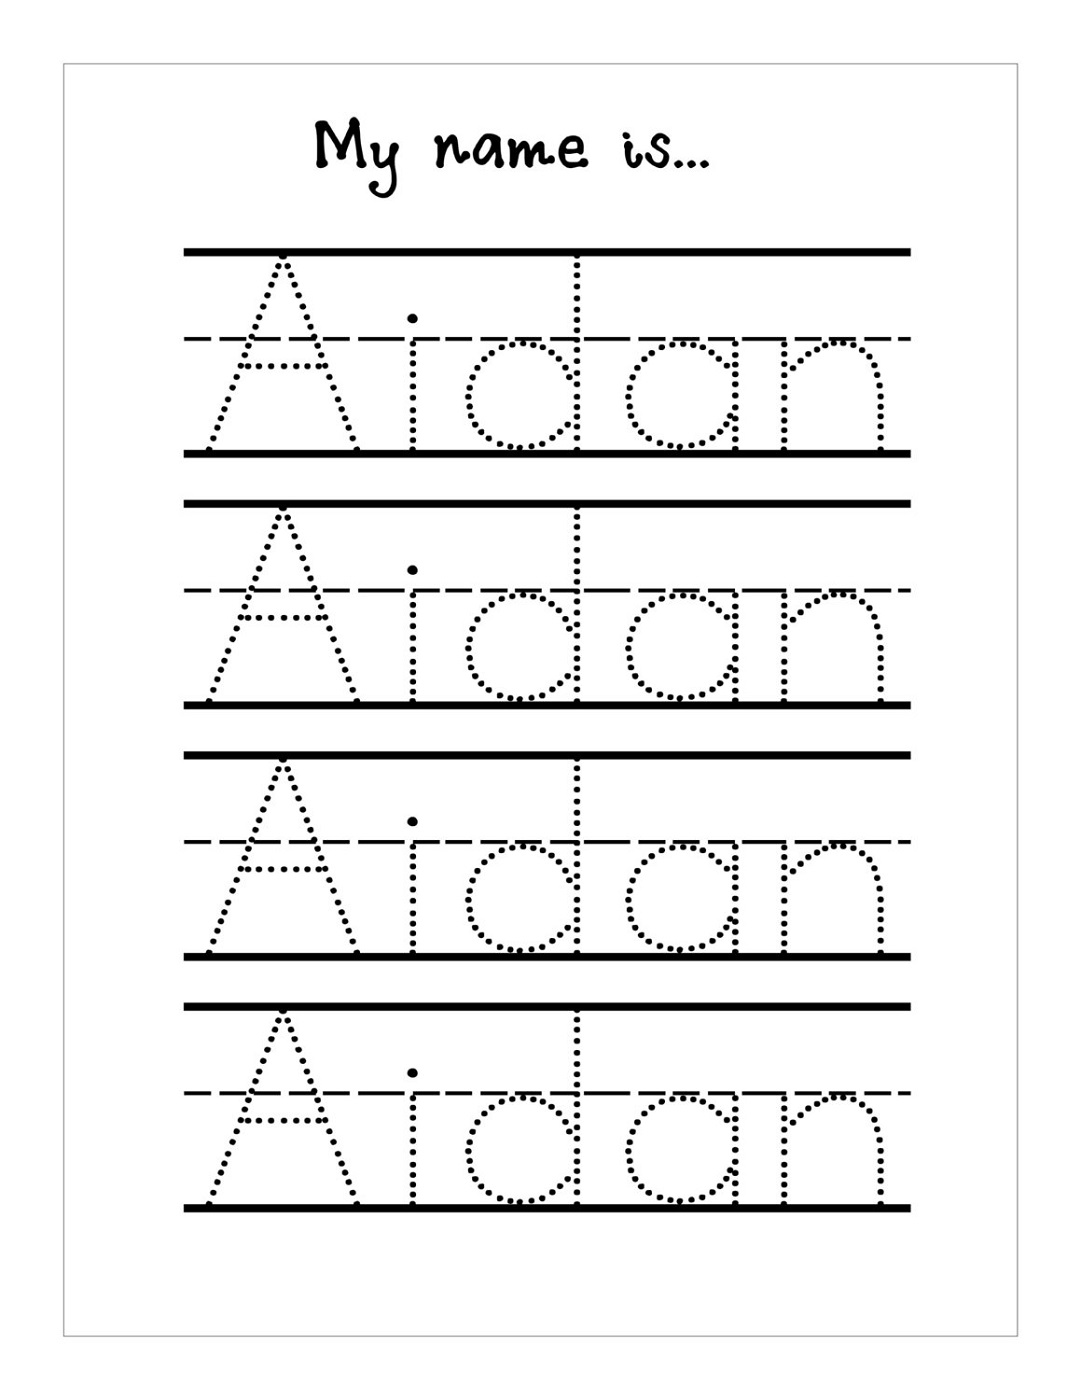 traceable-name-worksheets-for-kindergarten